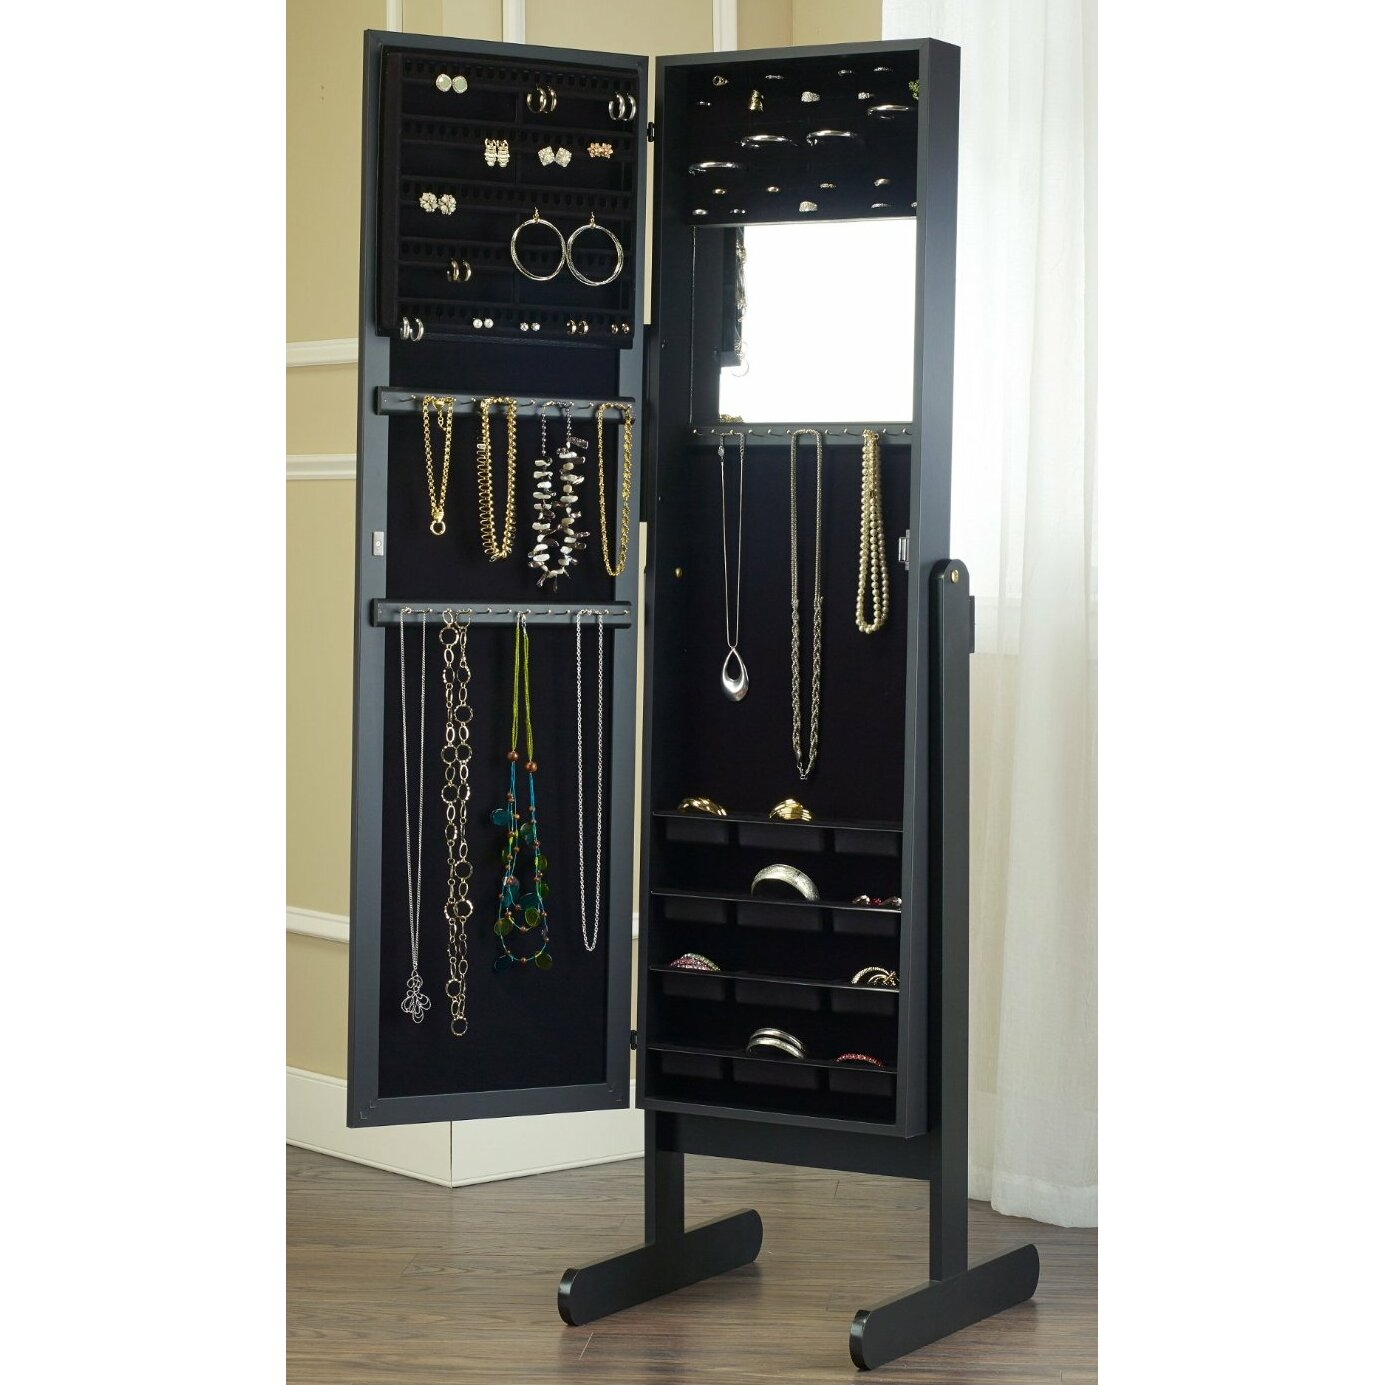 mirrotek free standing jewelry armoire with mirror reviews wayfair. Black Bedroom Furniture Sets. Home Design Ideas